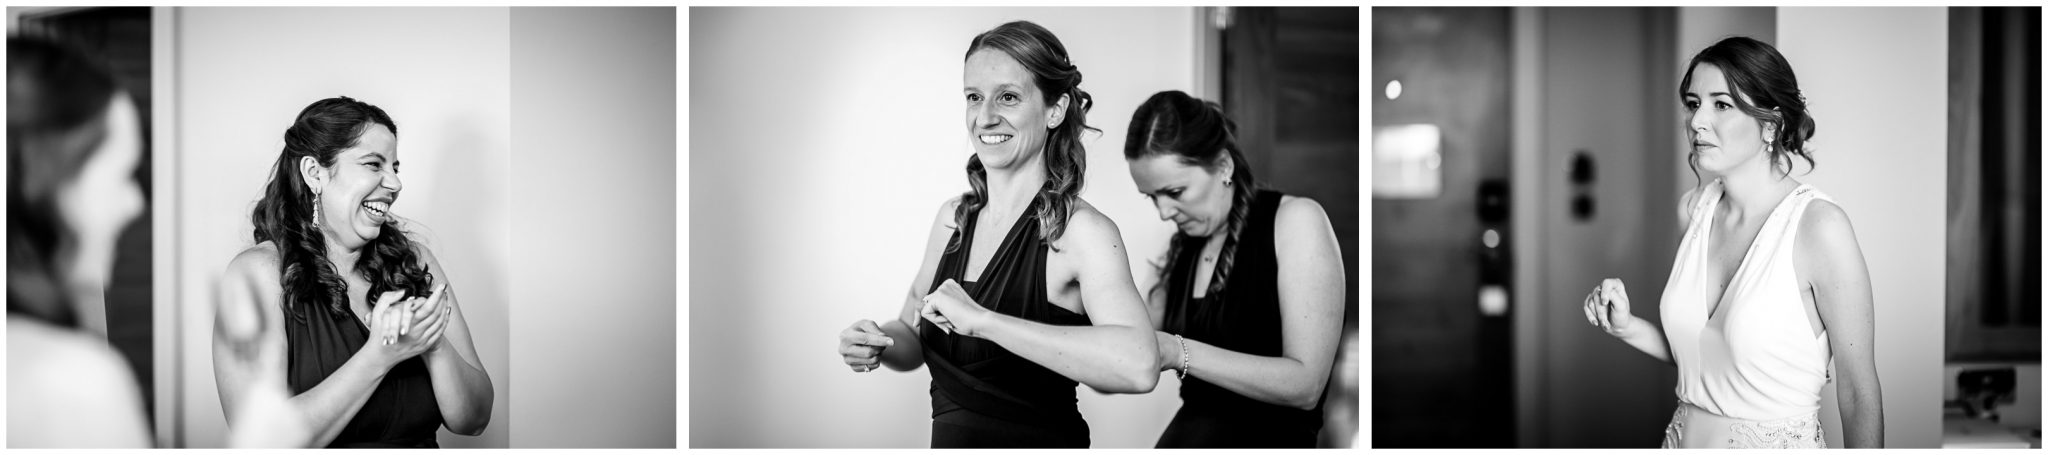 Bridesmaids getting ready in hotel suite black and white photos